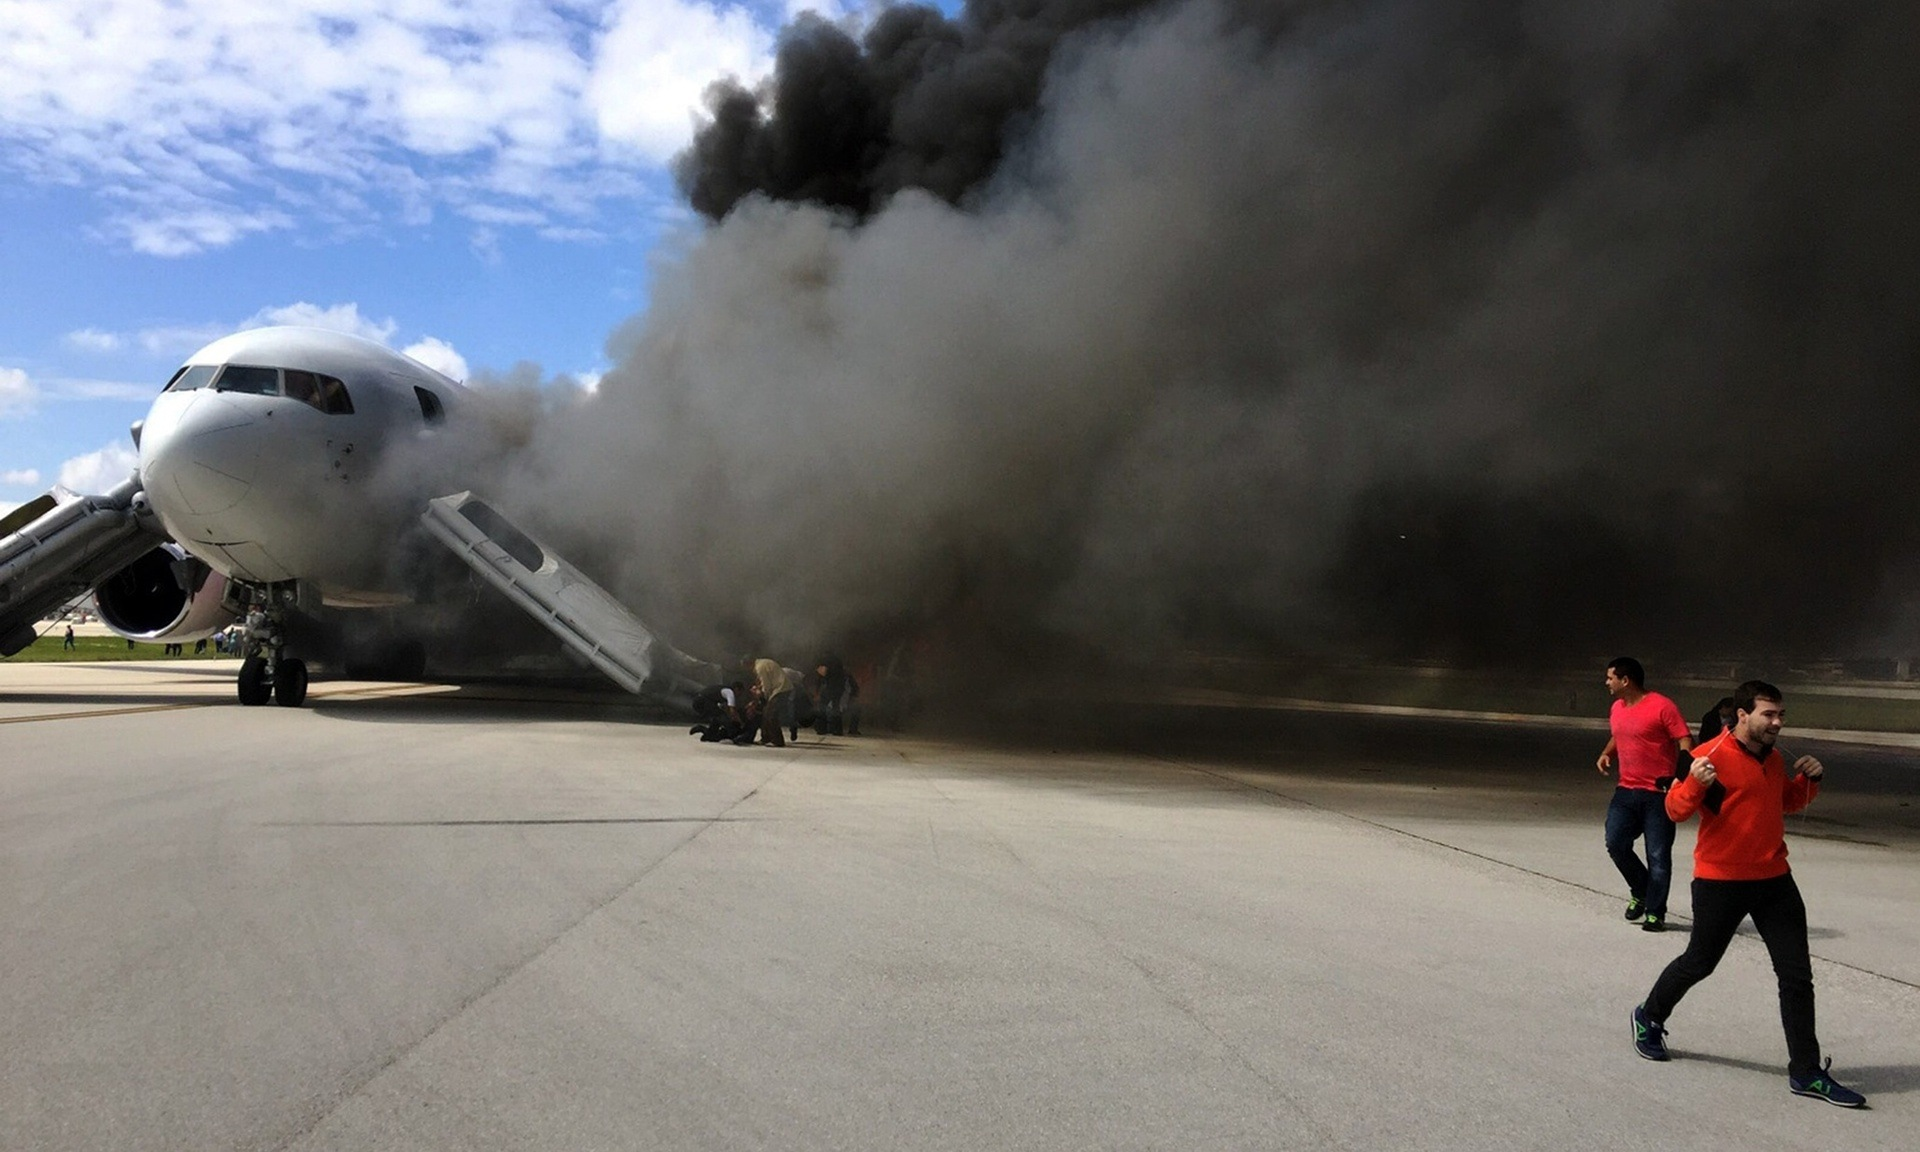 Jet catches fire at Fort Lauderdale airport, Florida